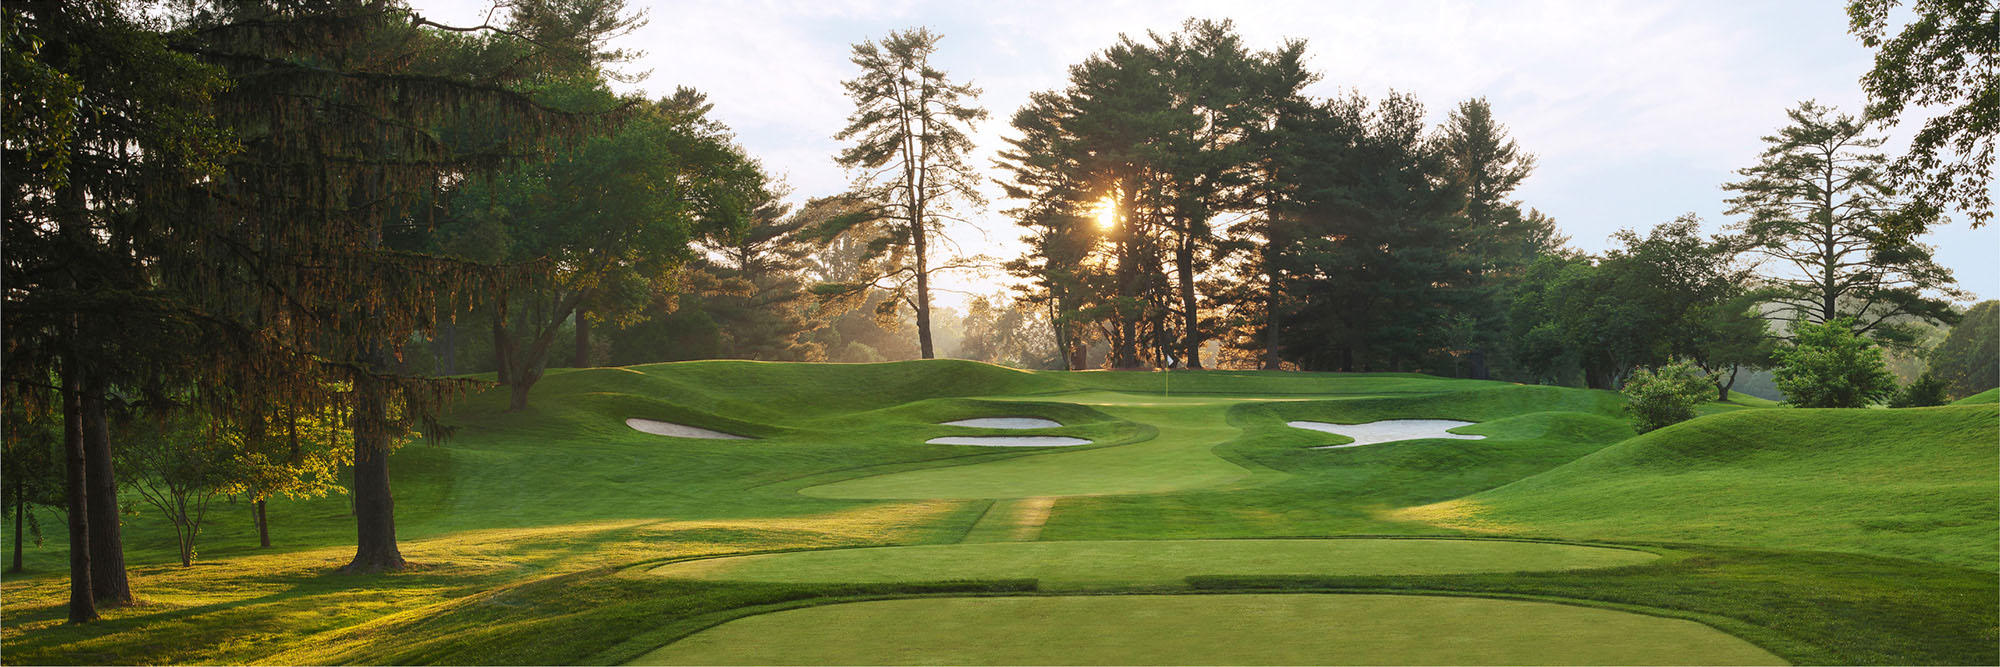 Golf Course Image - Congressional Blue No. 7